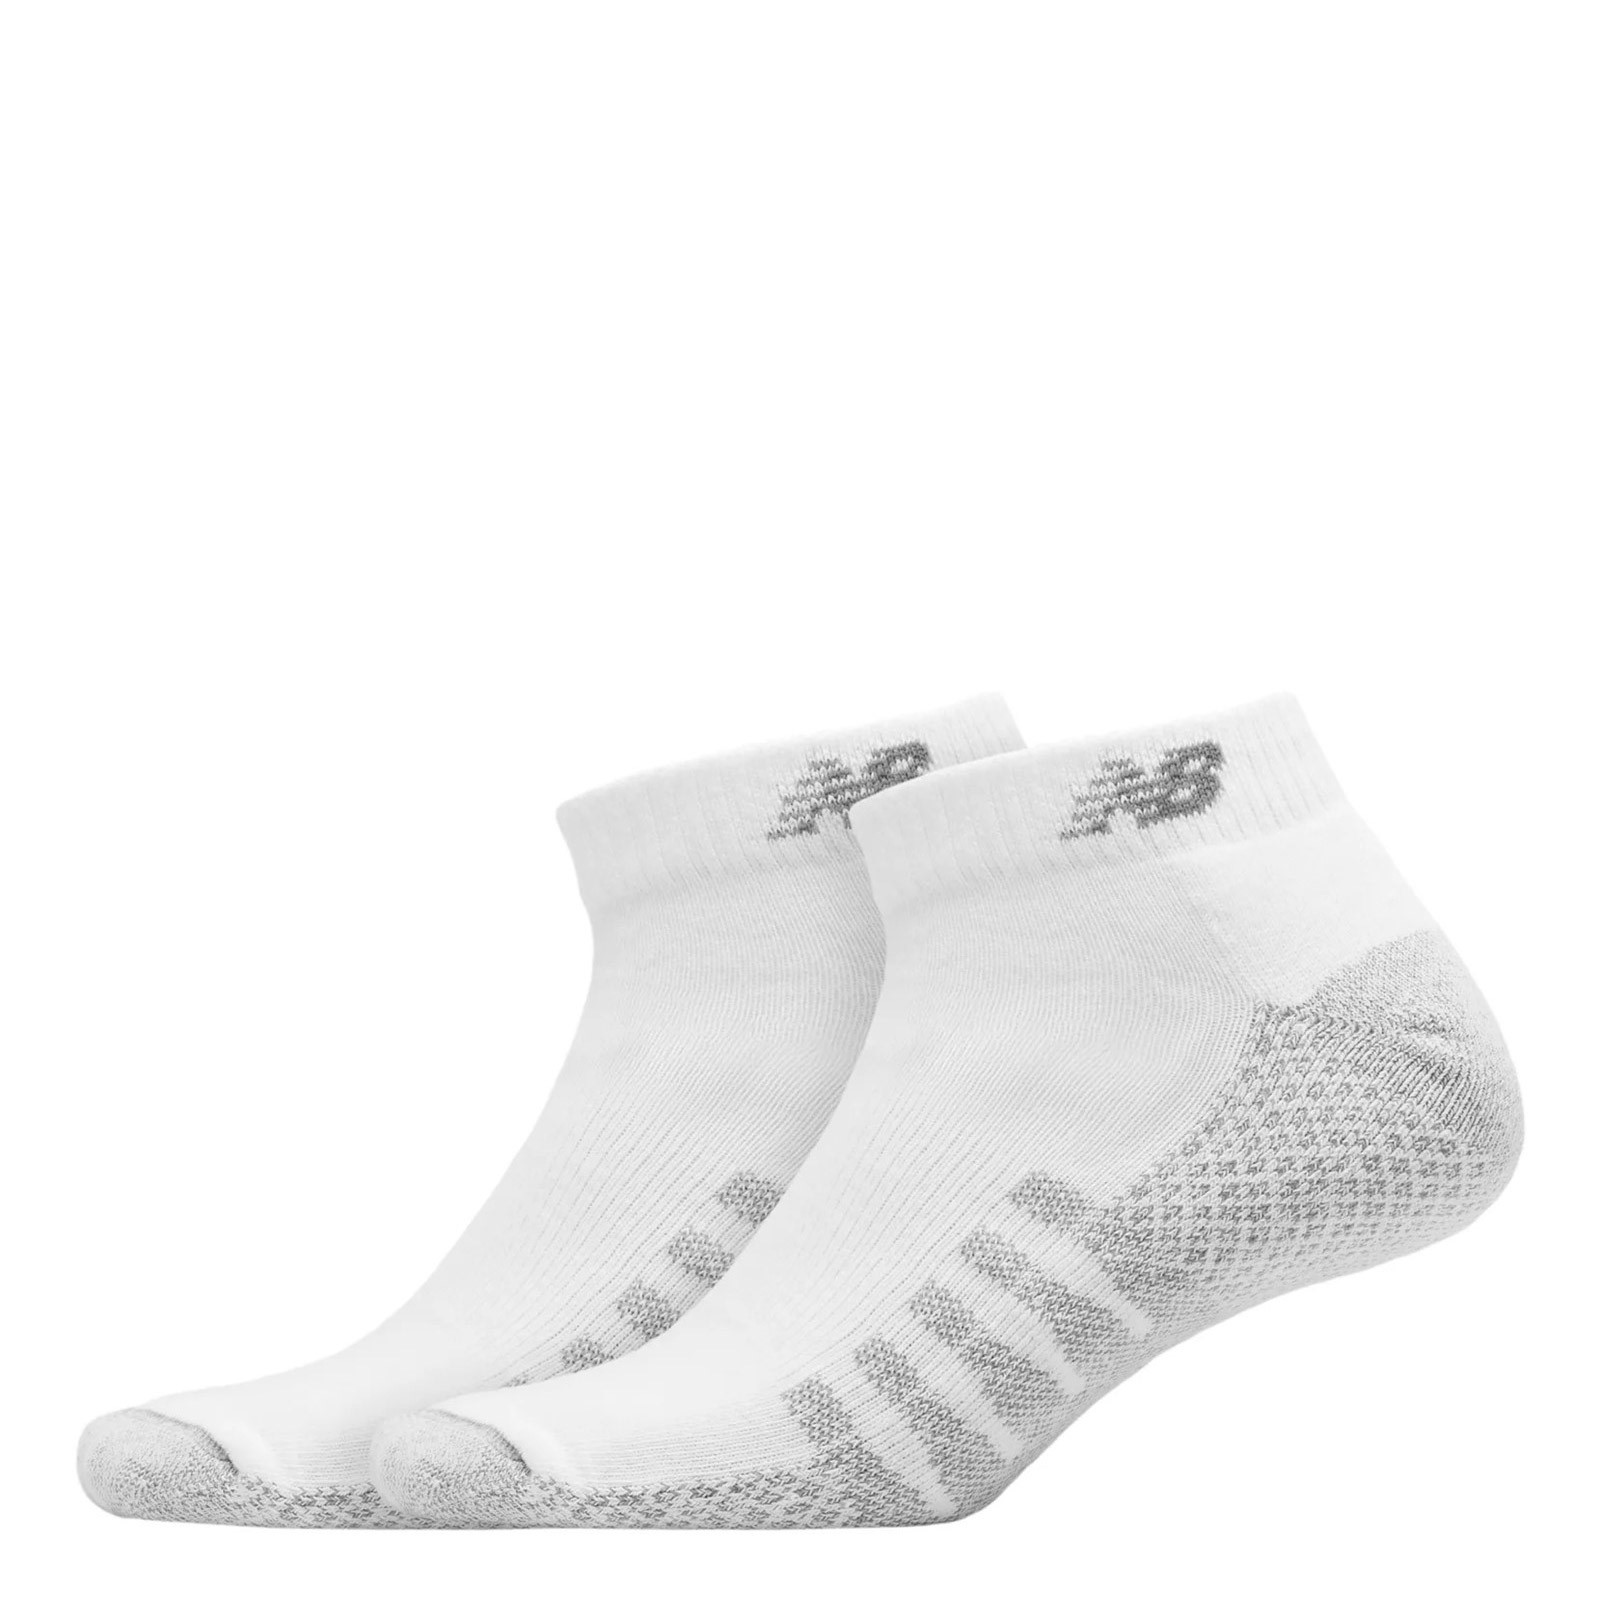 Unisex New Balance, Coolmax Low Cut Socks - 2 Pack